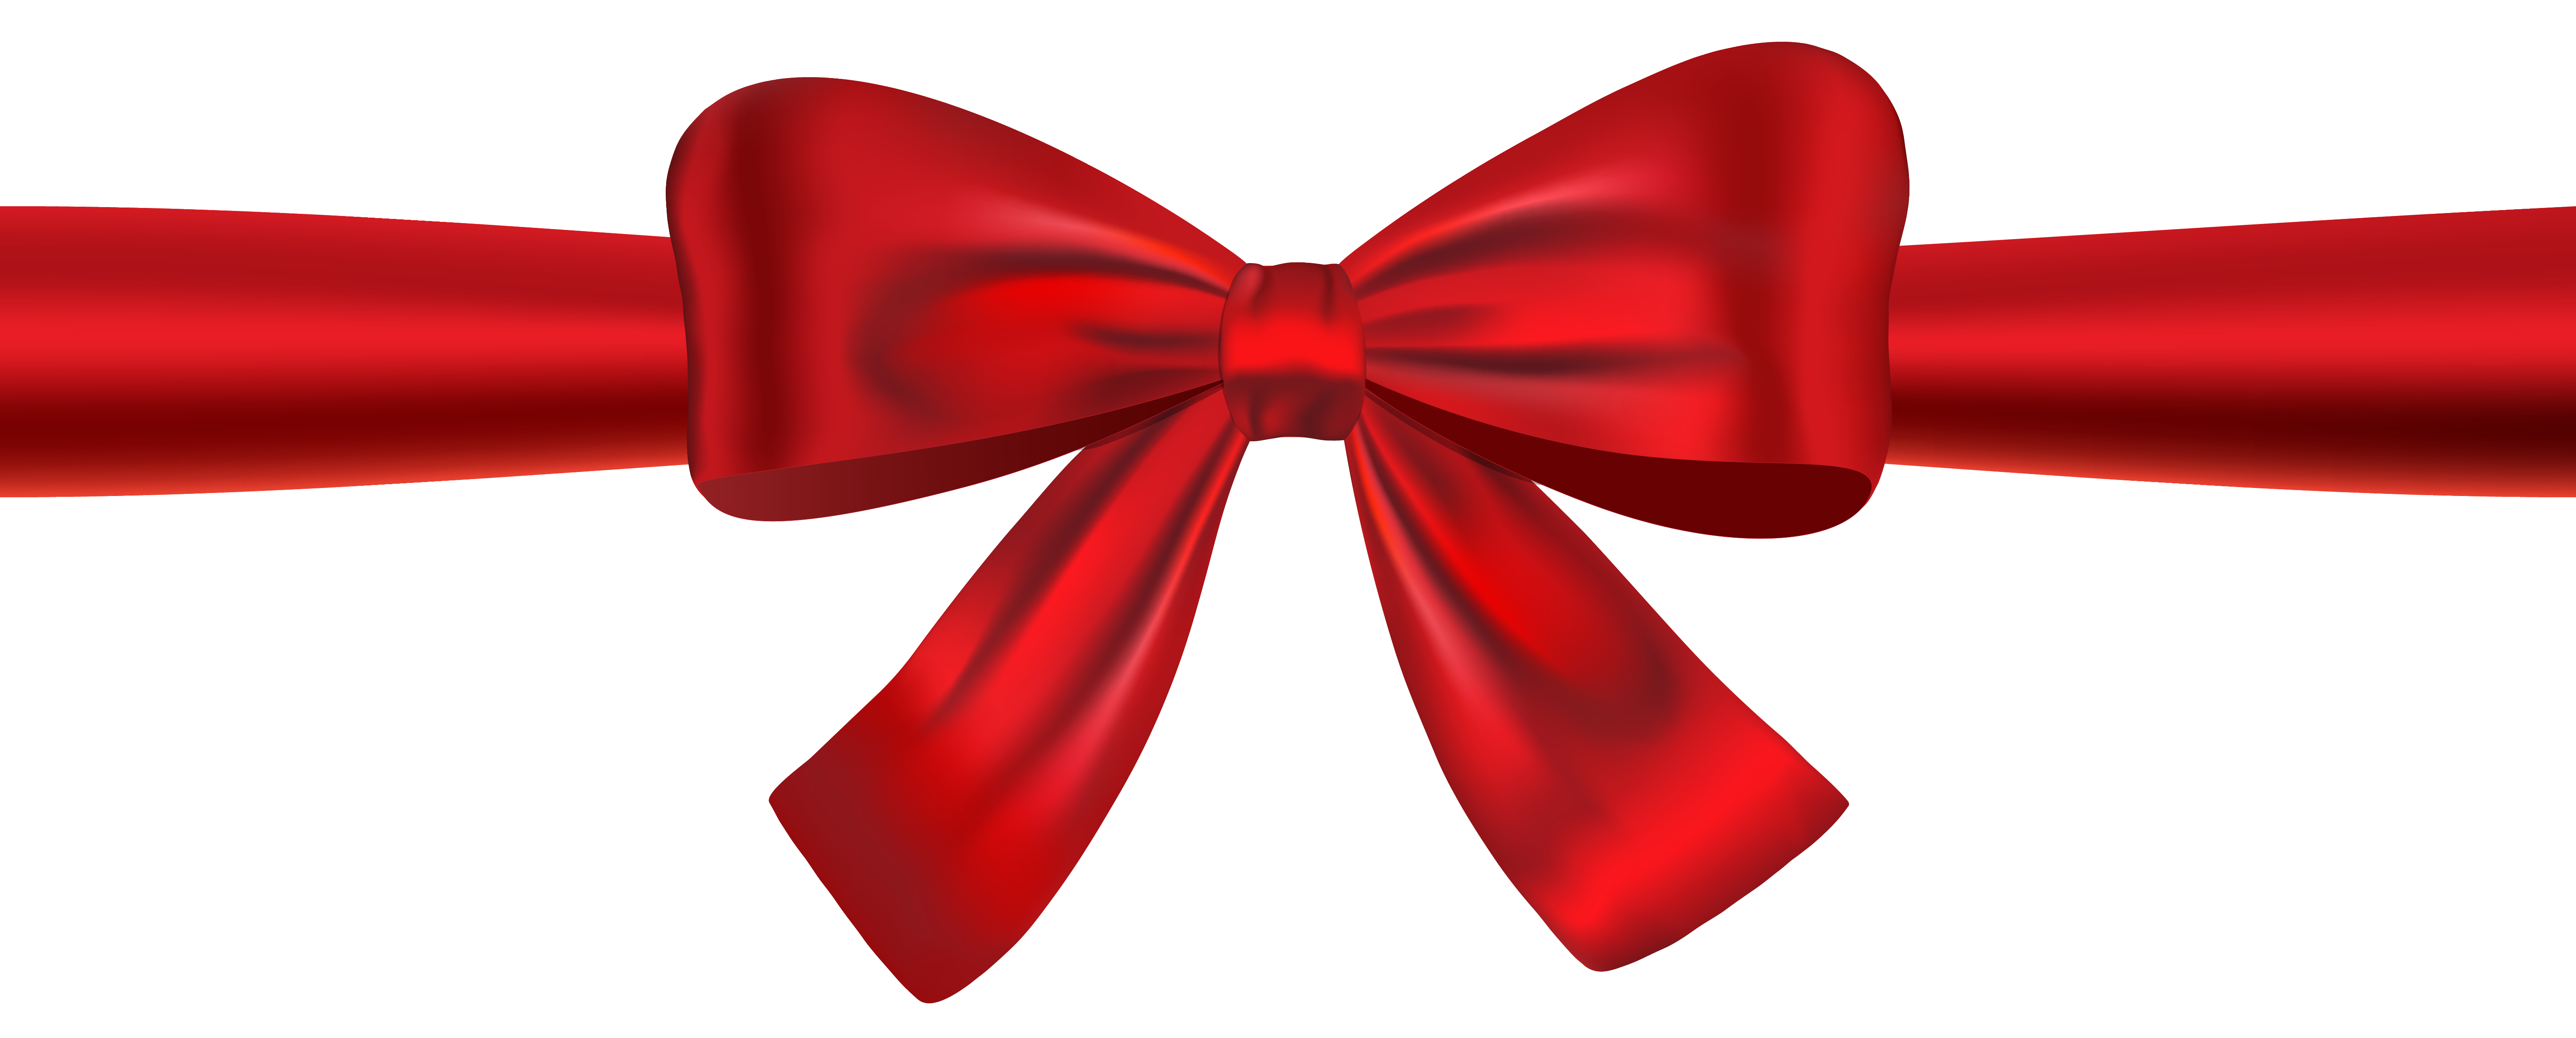 banner royalty free Red Ribbon and Bow PNG Clipart Image